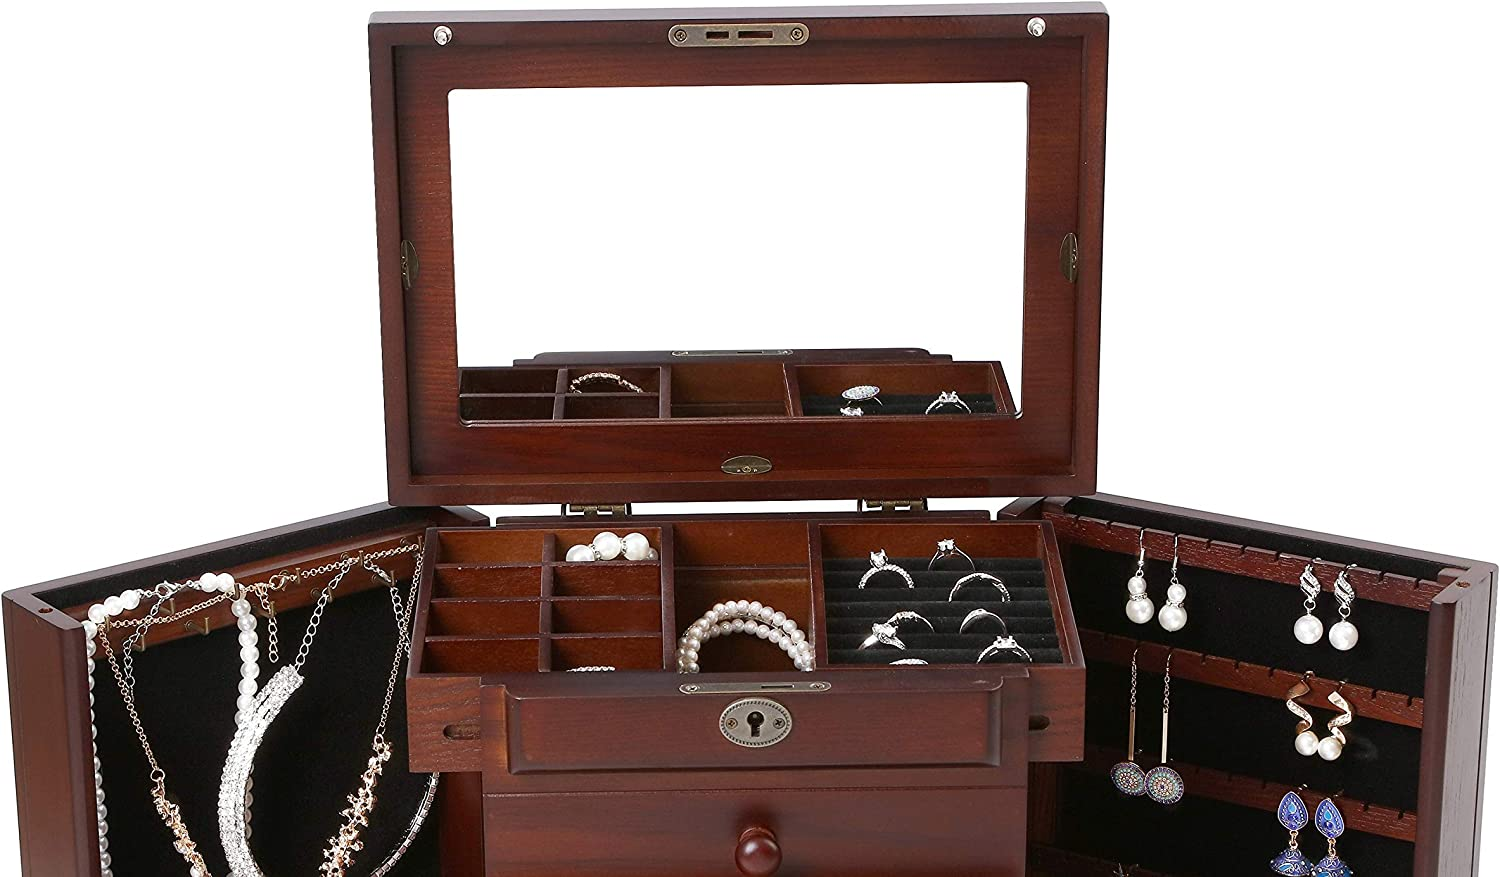 Double Door Drawer Jewelry Storage Box 10.8L x 8.3W x 12H inch Brown Large Wooden Jewelry Box Built-in Mirror and Lock